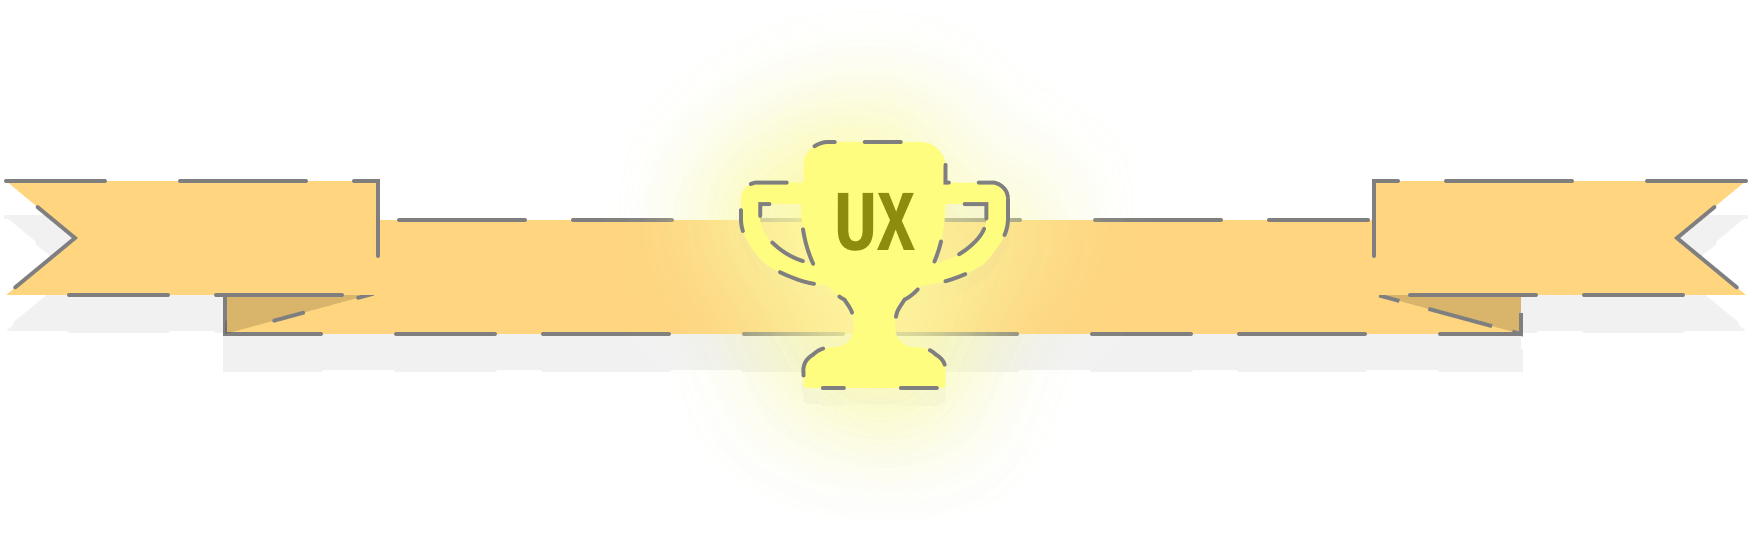 Glowing UX trophy